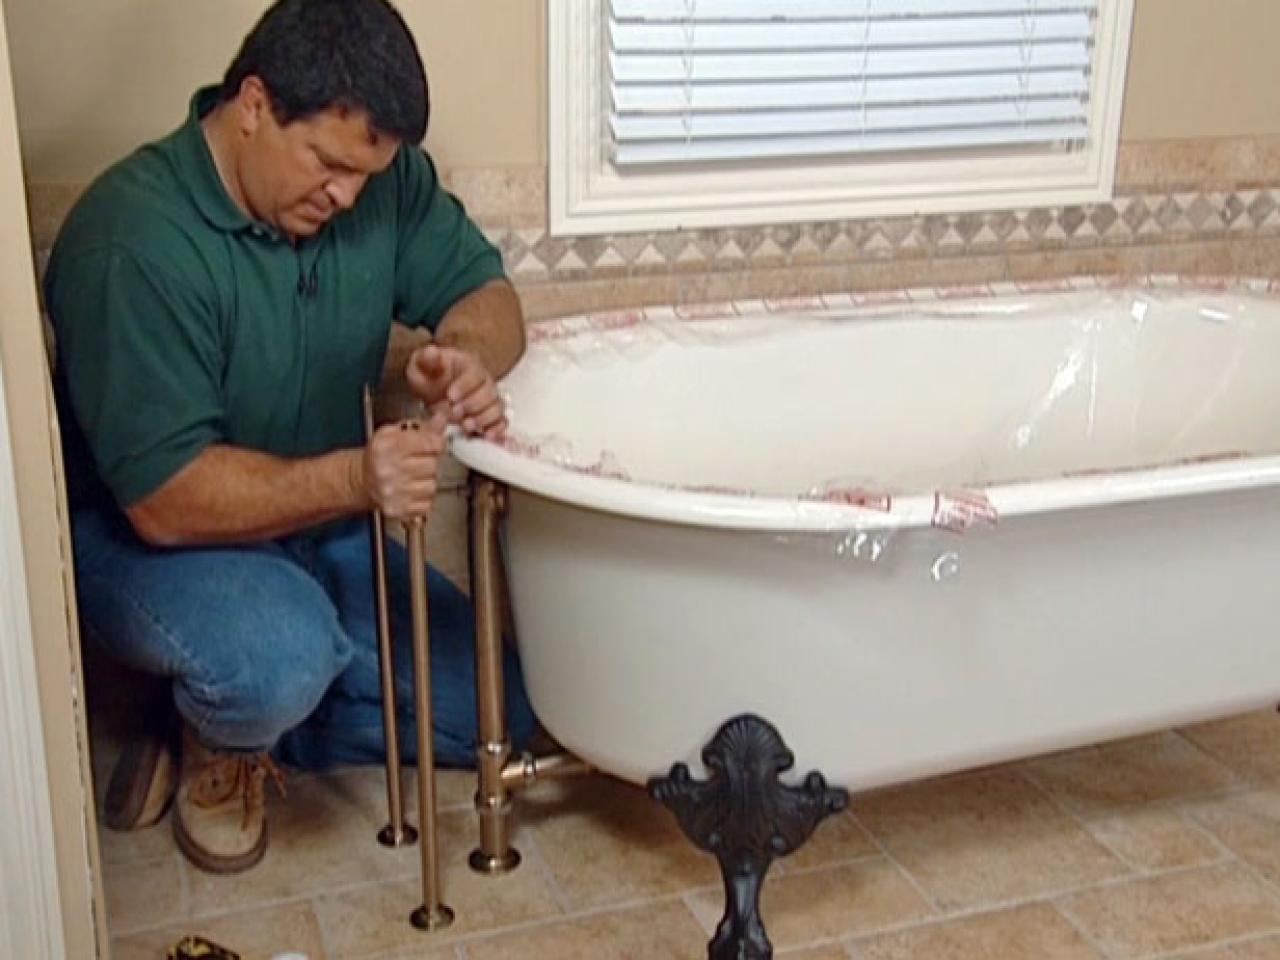 how to install a clawfoot tub How to Install Plumbing for a Claw Foot Tub | how tos | DIY how to install a clawfoot tub